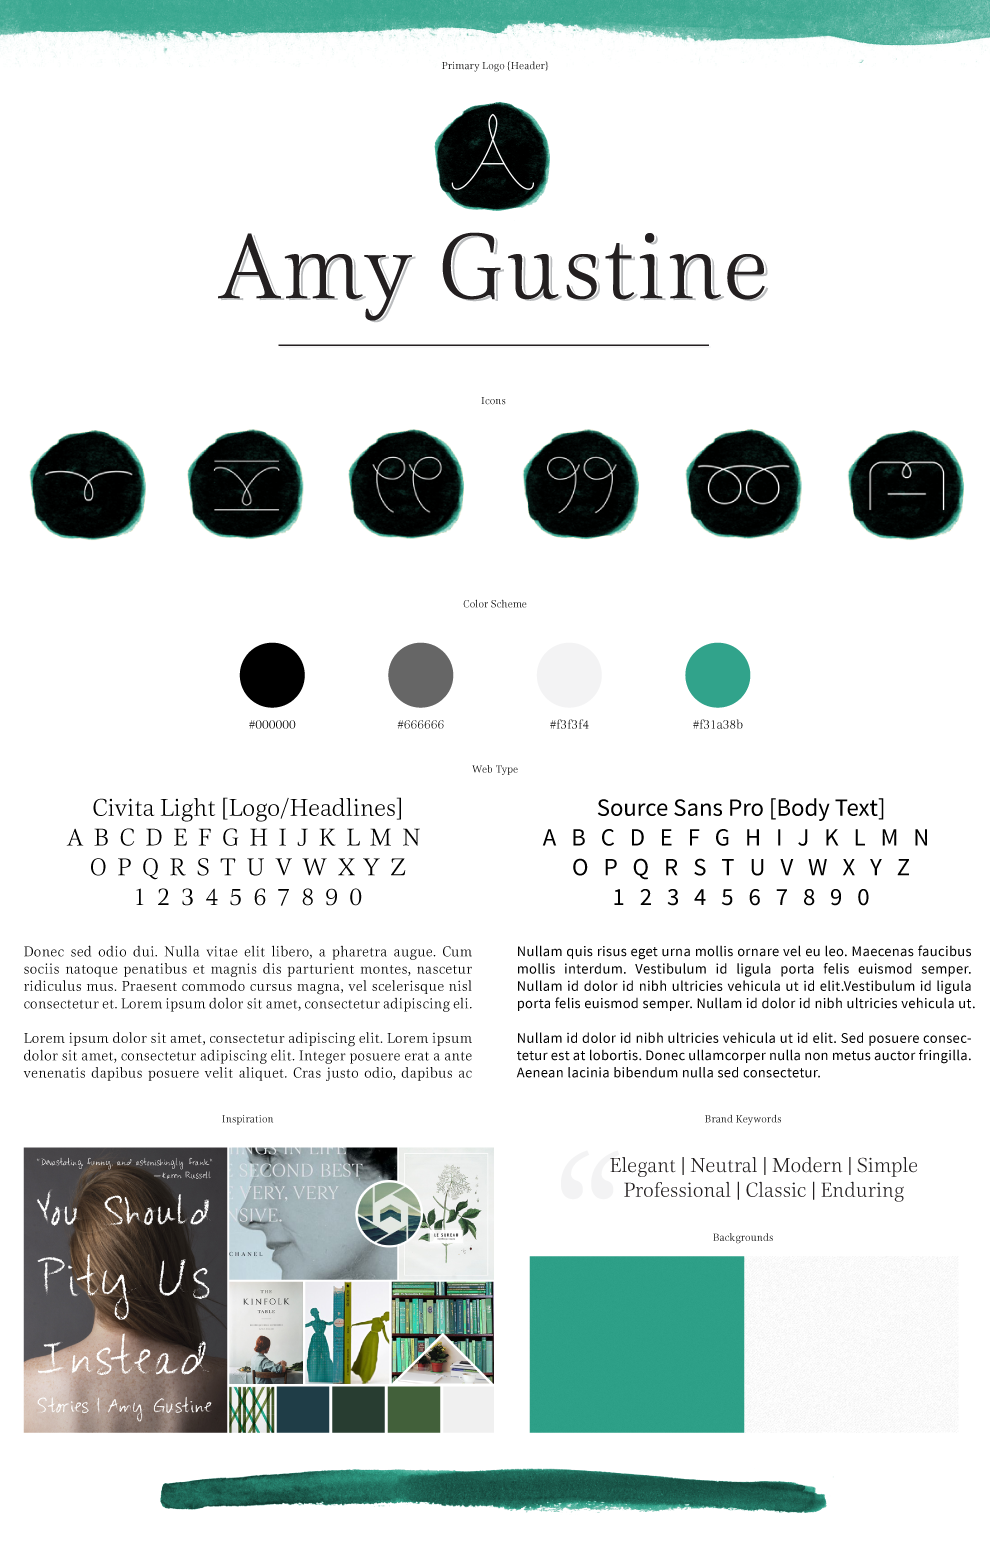 Amy-Gustine-Brand-Elements.png